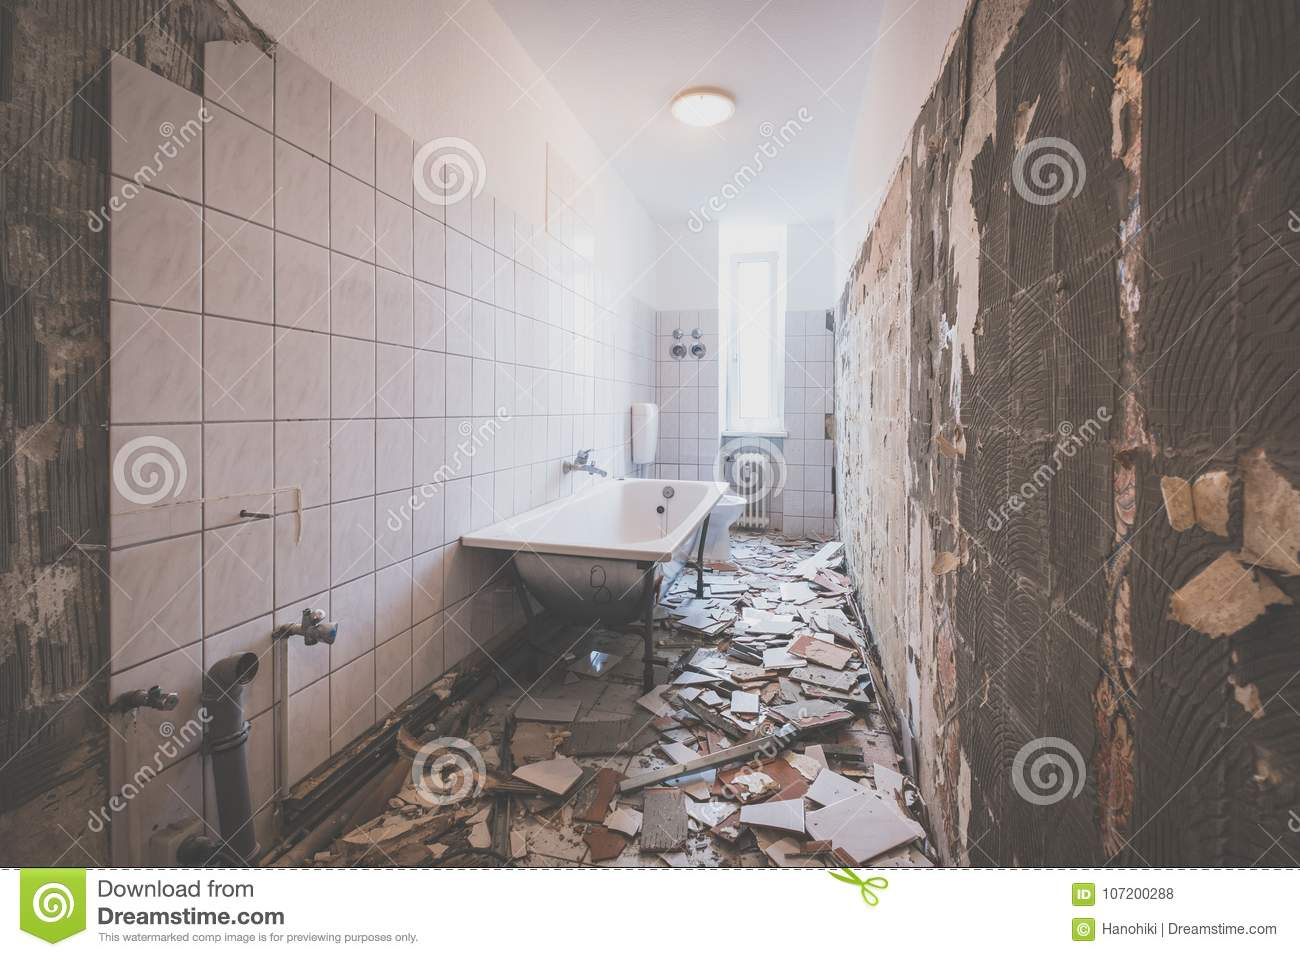 Bathroom Renovation - Removing Tiles In Old Apartment Bathroom Stock ...